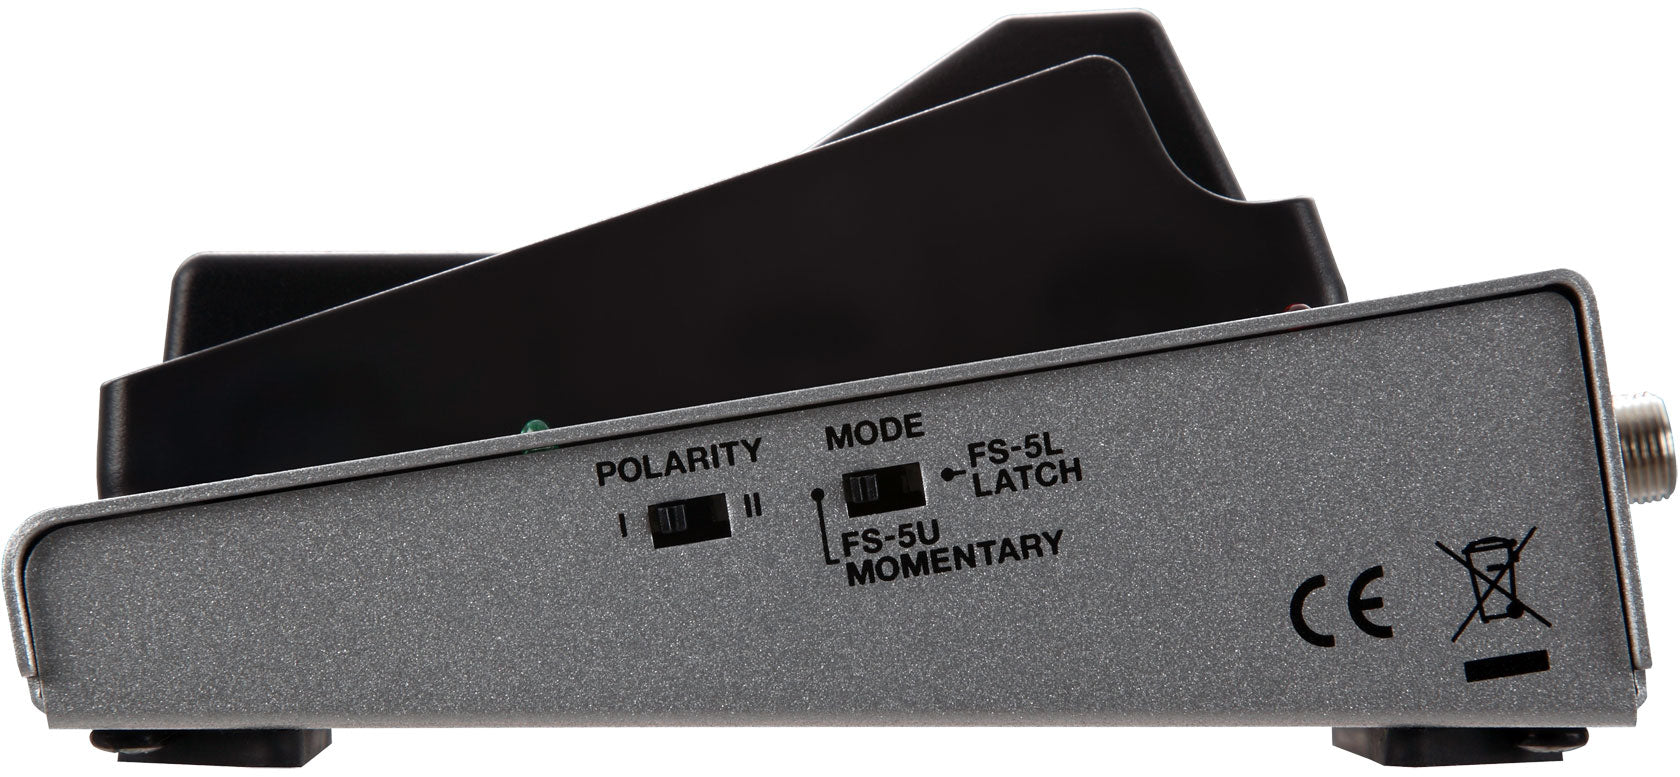 Boss FS-7 Space-Saving, Multifunctional Dual Footswitch Latch or Momentary Mode